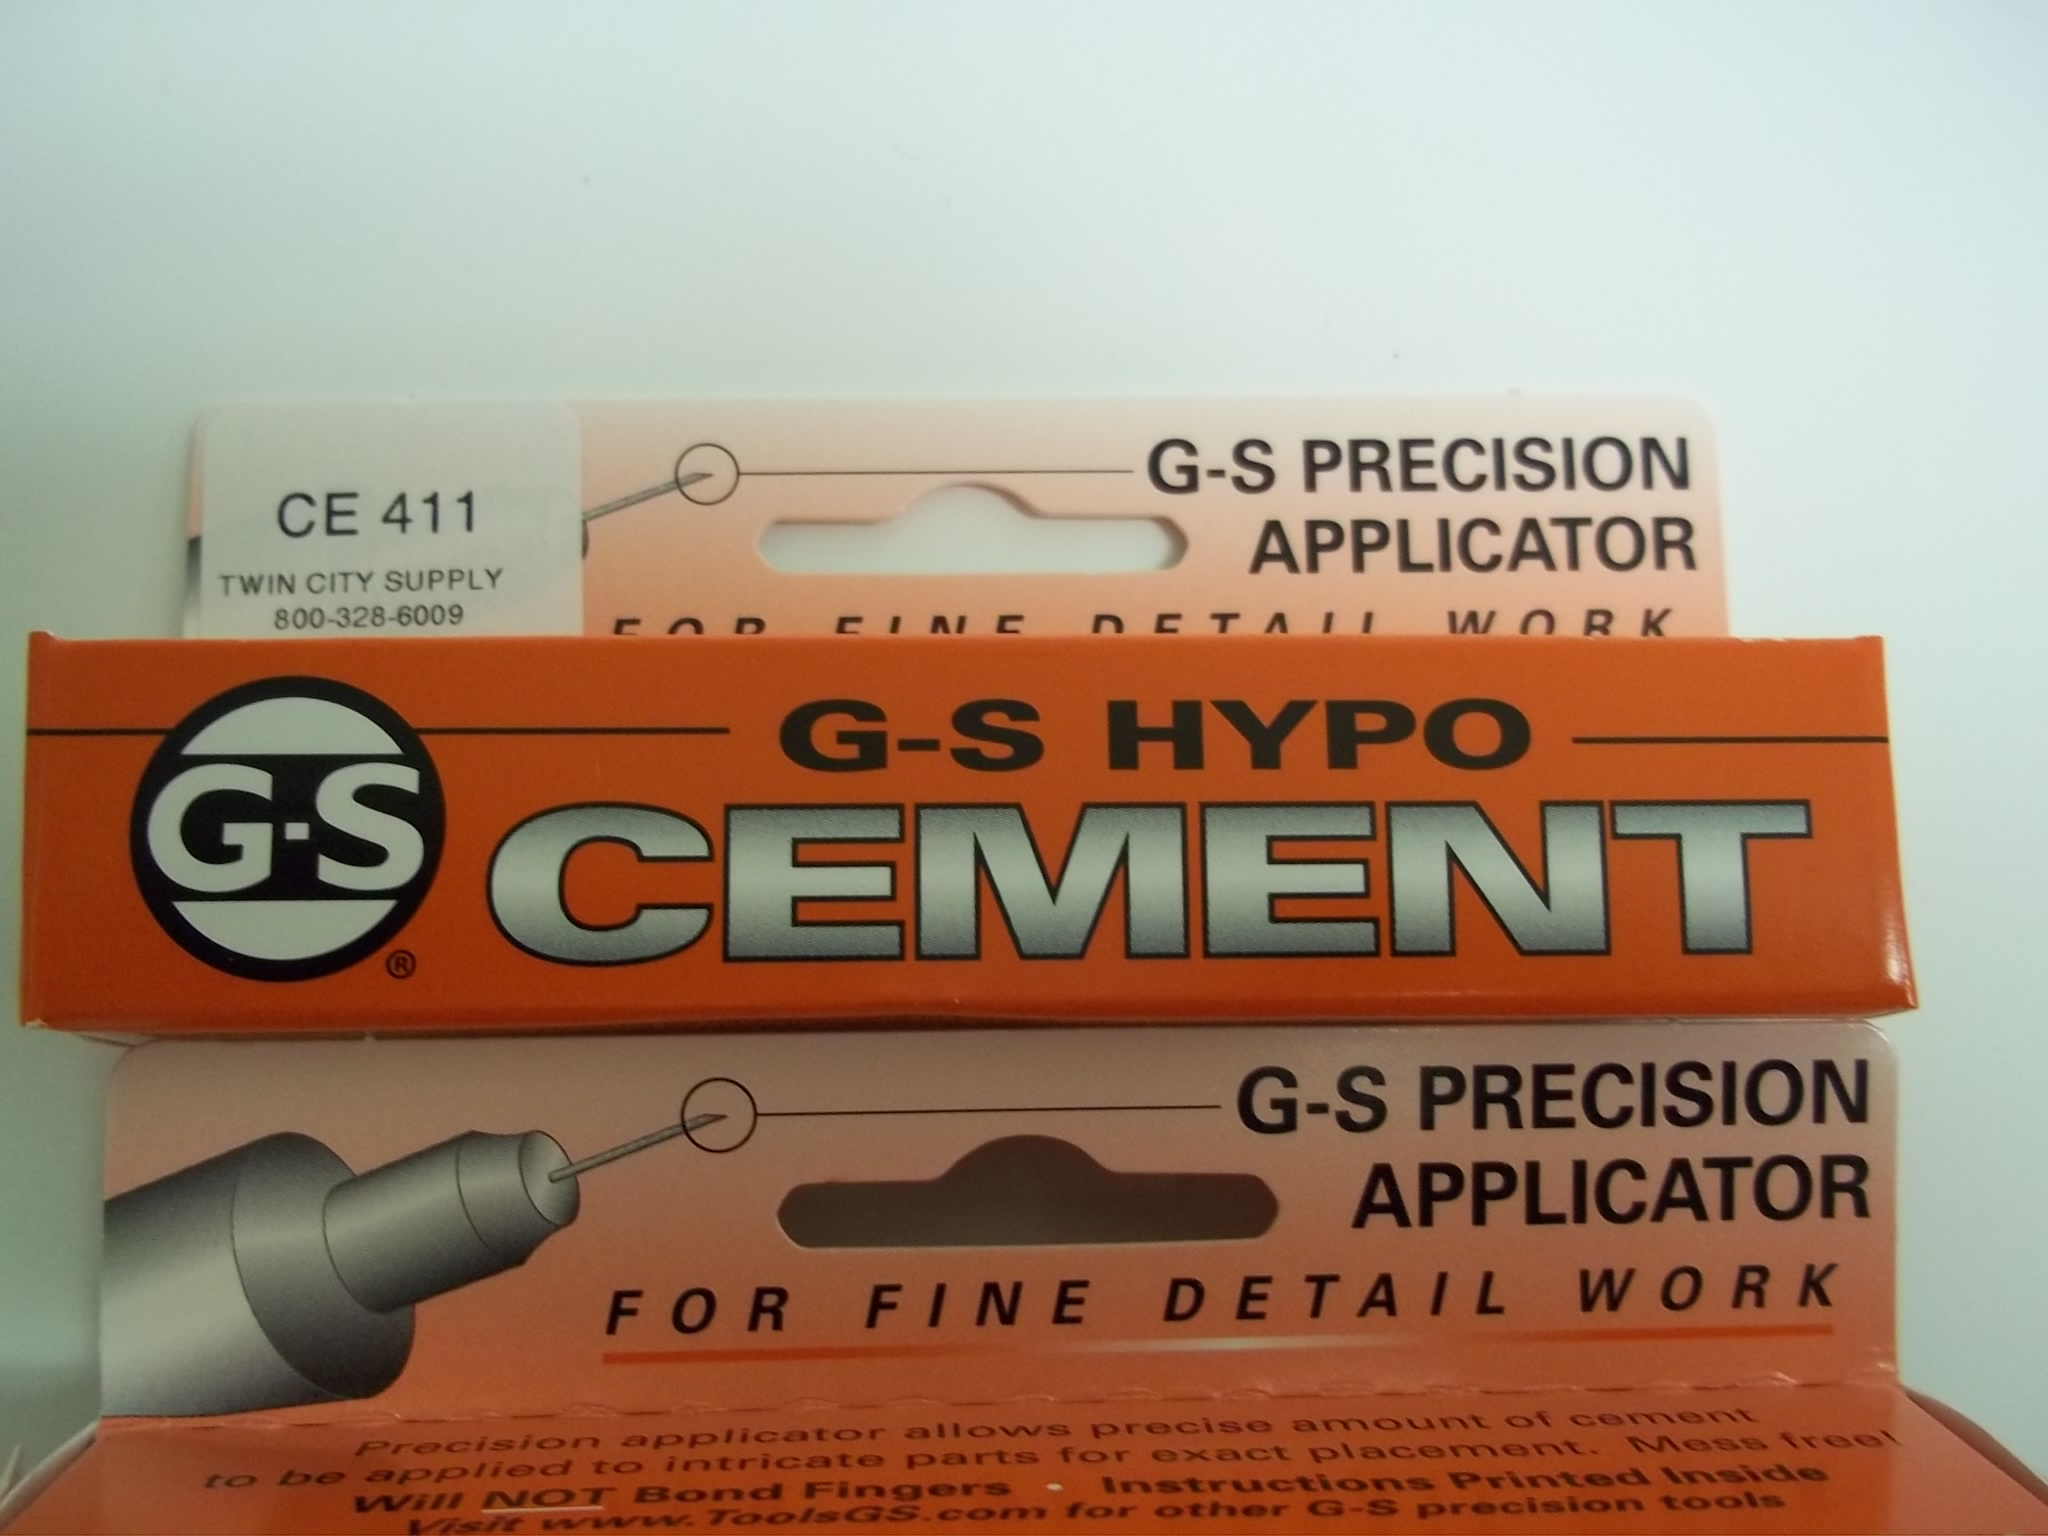 CE411 G-S Hypo Cement--Excellent for Watch Crystals & Repair Jobs